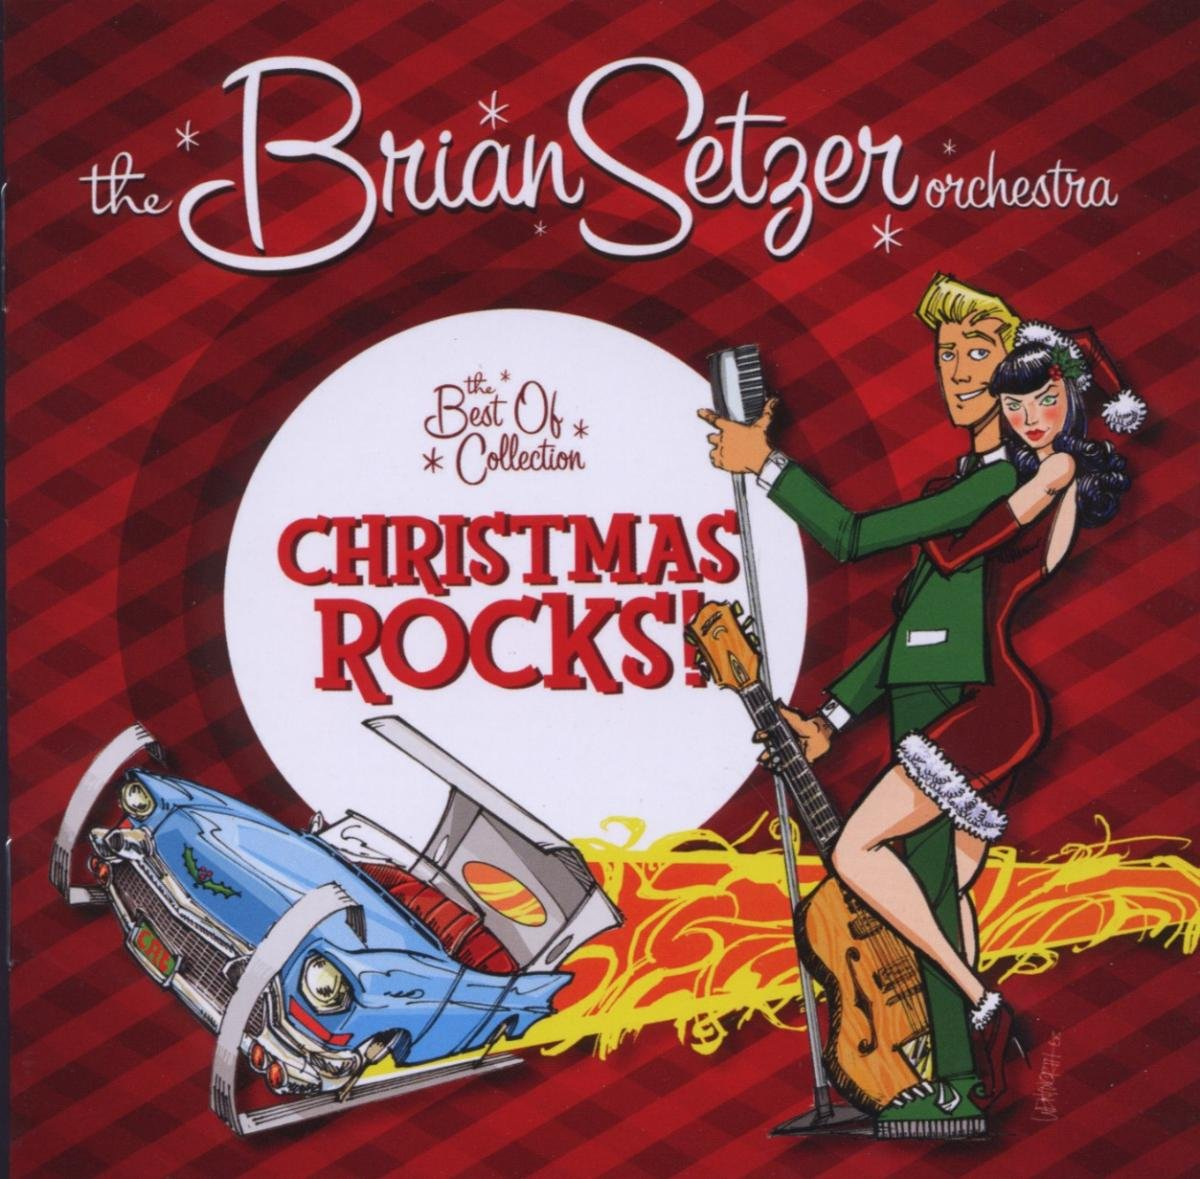 brian setzer orchestra christmas rocks the best of collection amazoncom music - Christmas Cd